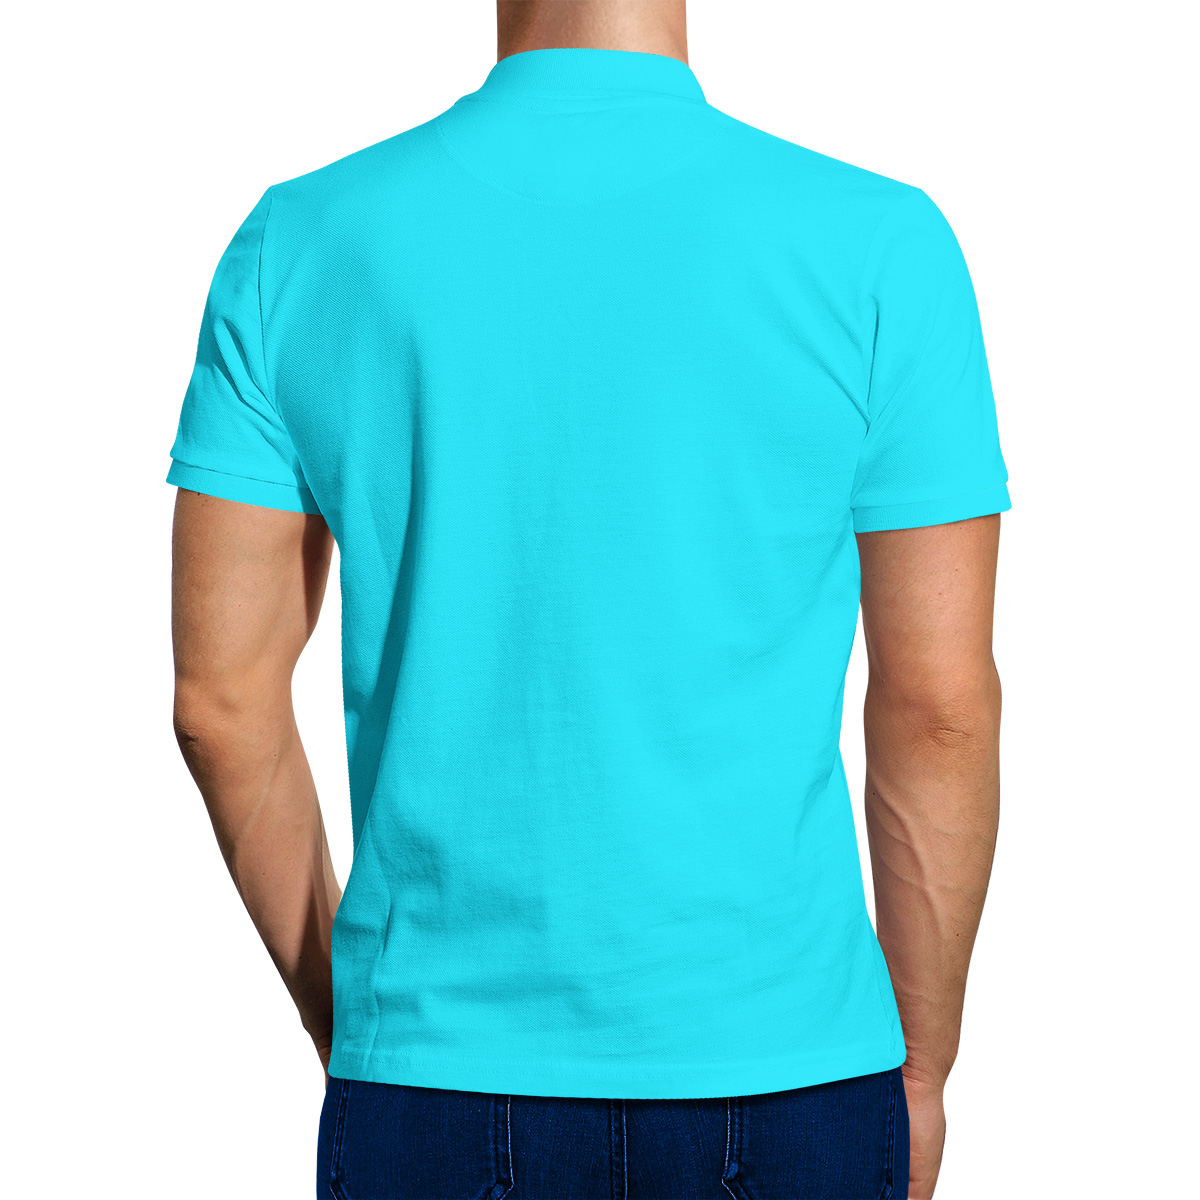 Sky blue t shirt front and back Light blue t shirt mens